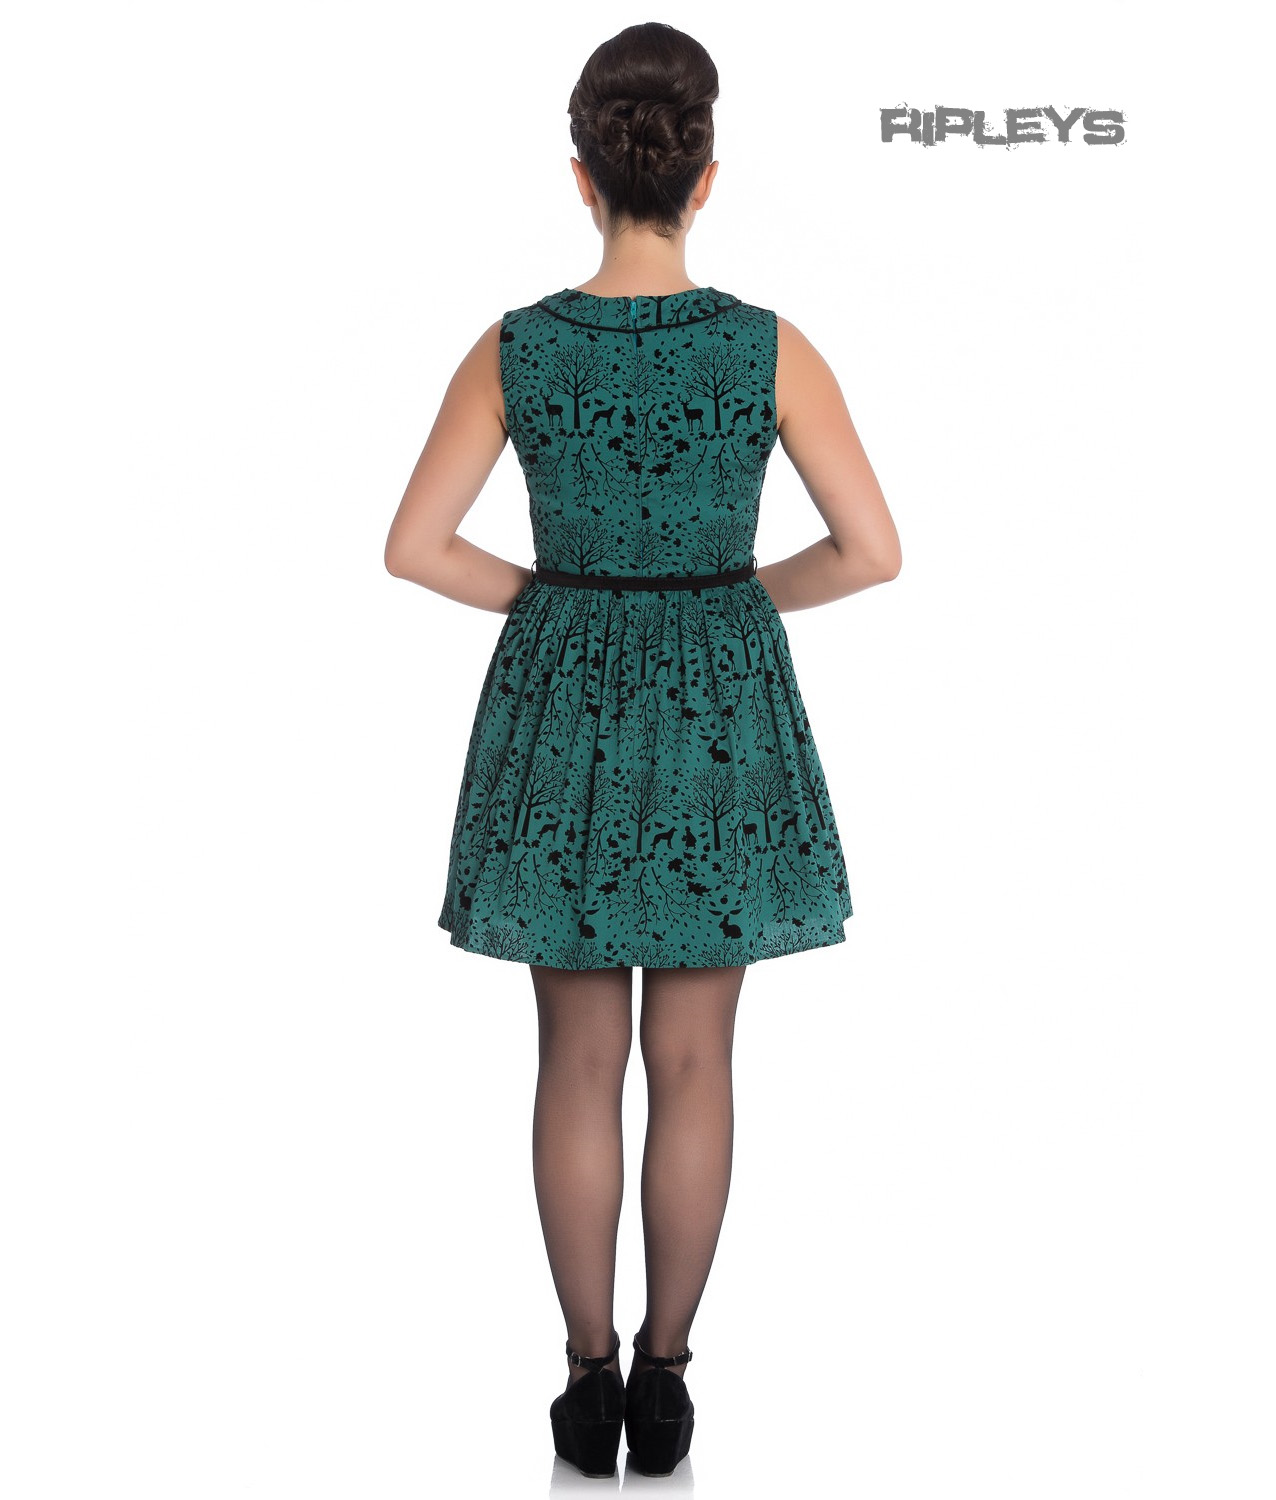 Hell-Bunny-50s-Mini-Skater-Dress-Woodland-Trees-SHERWOOD-Dark-Green-All-Sizes thumbnail 8